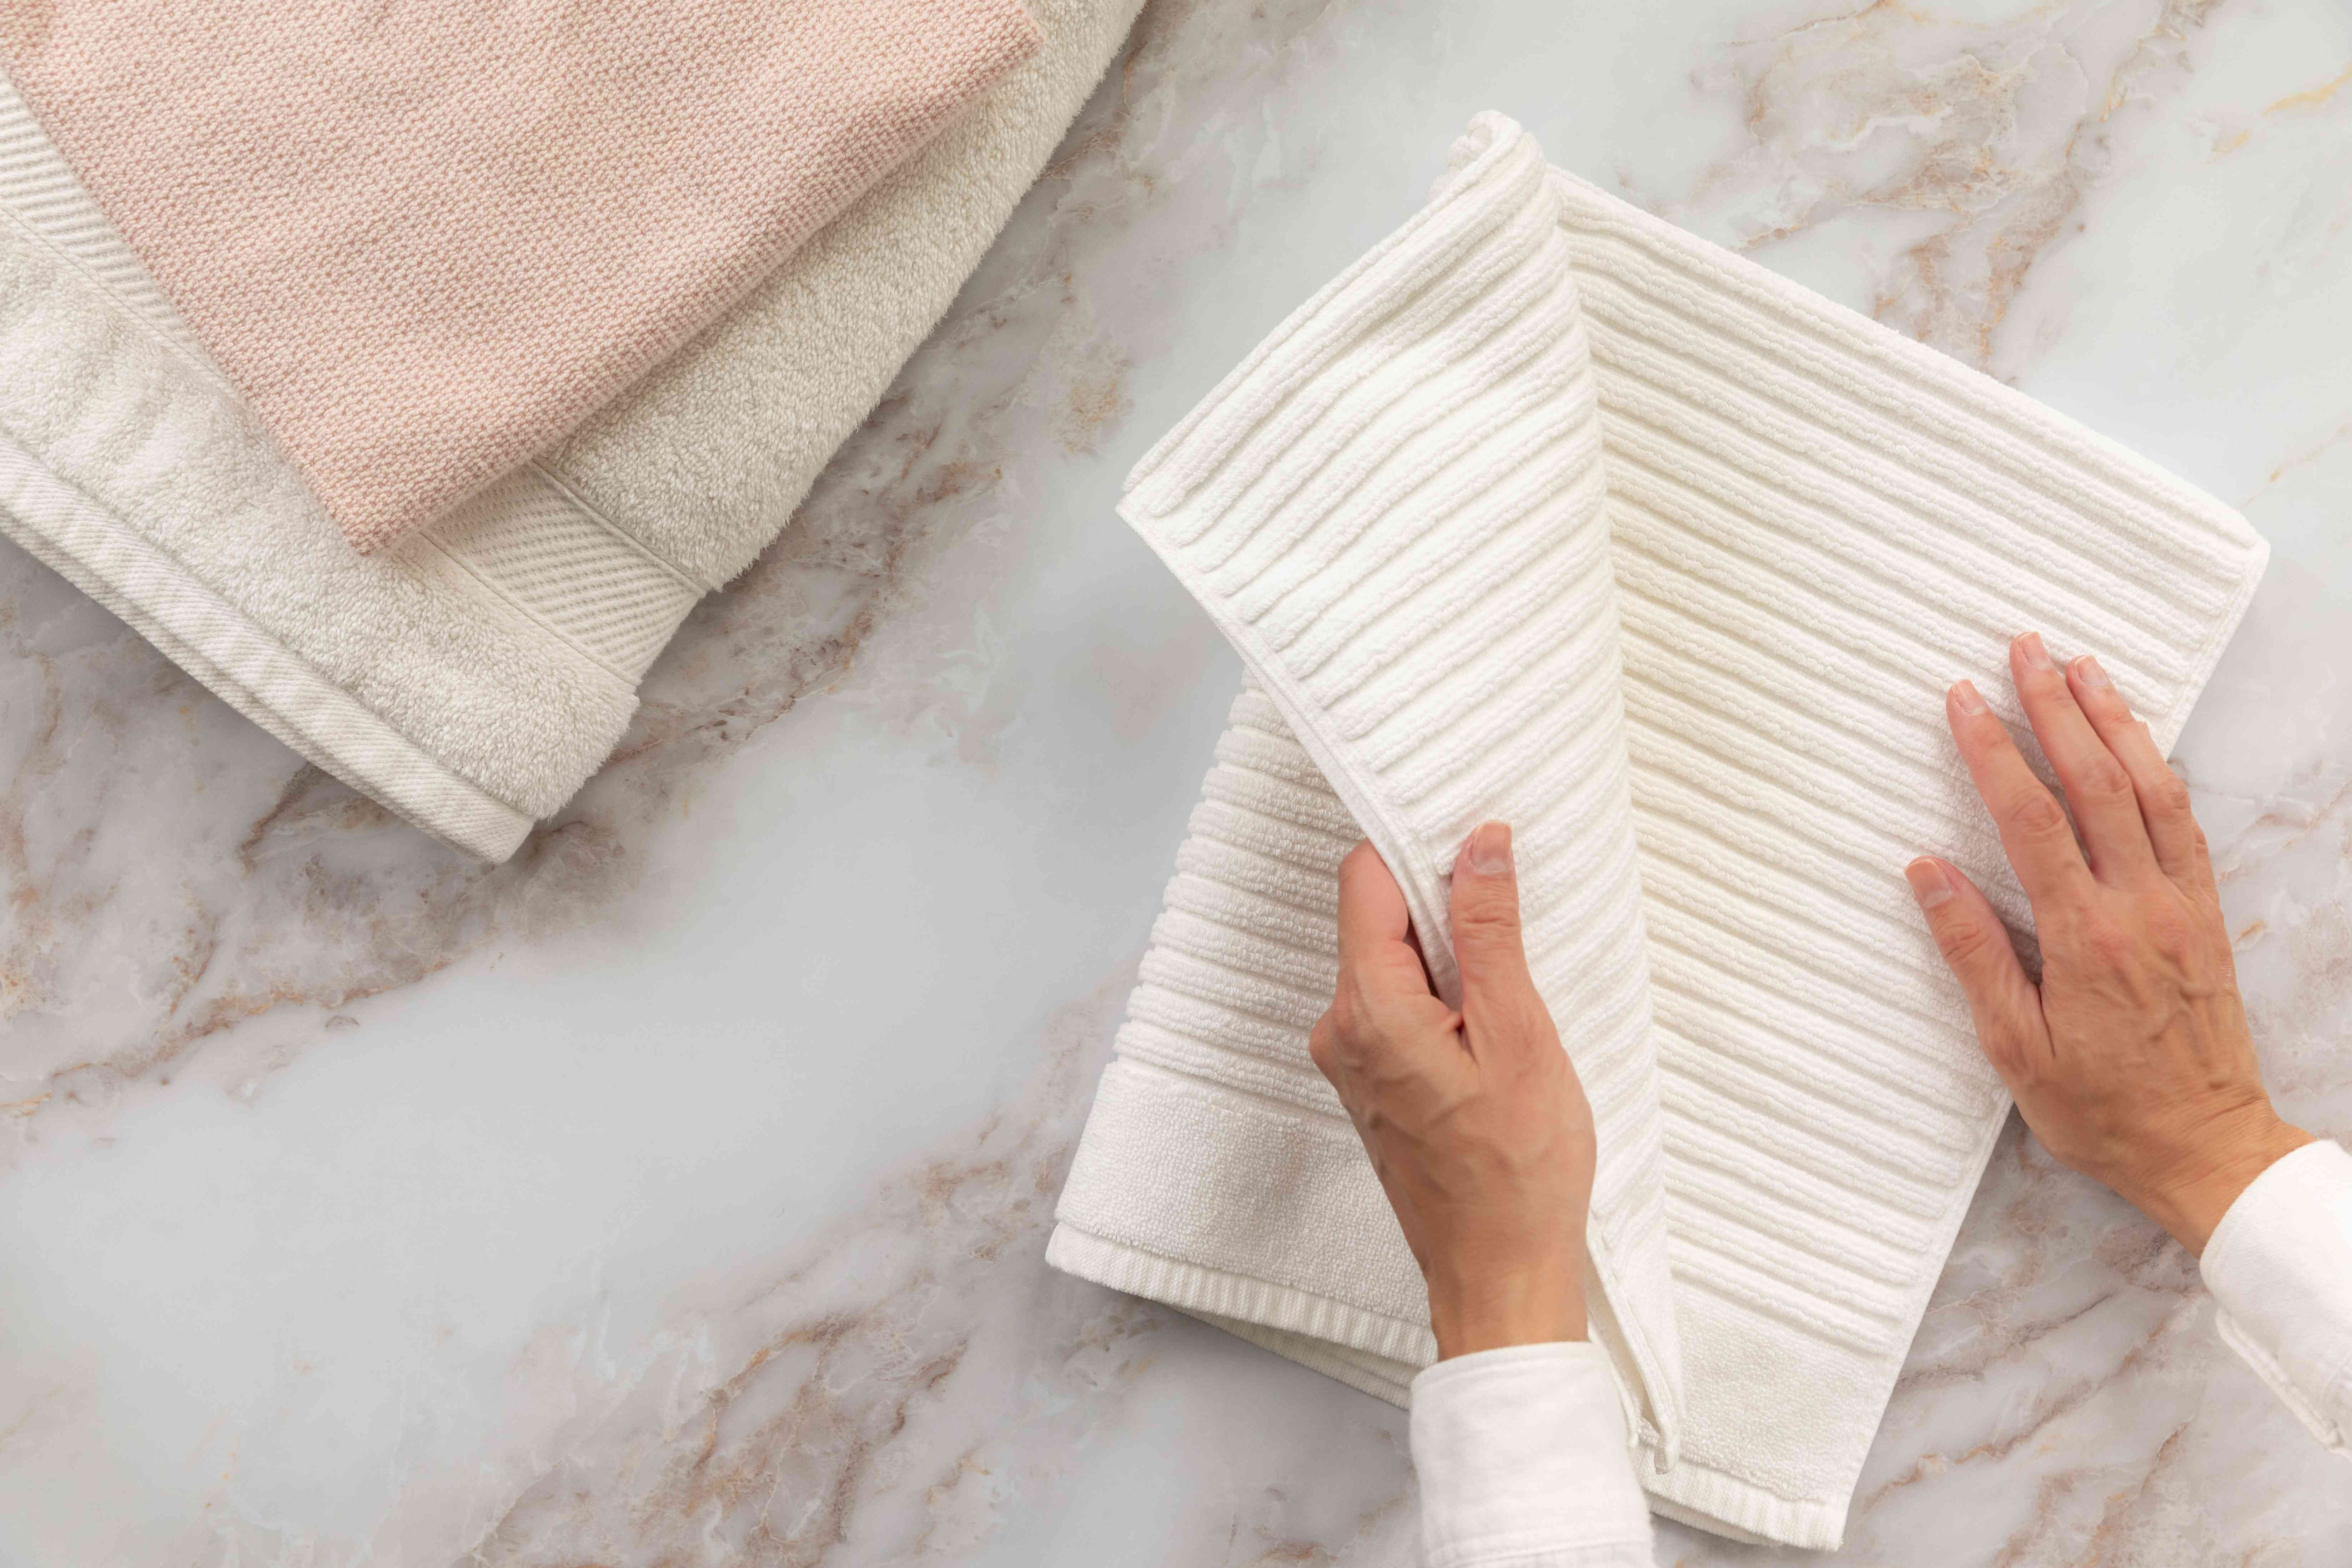 White ribbed bath towel folded in half twice next to other bath towels